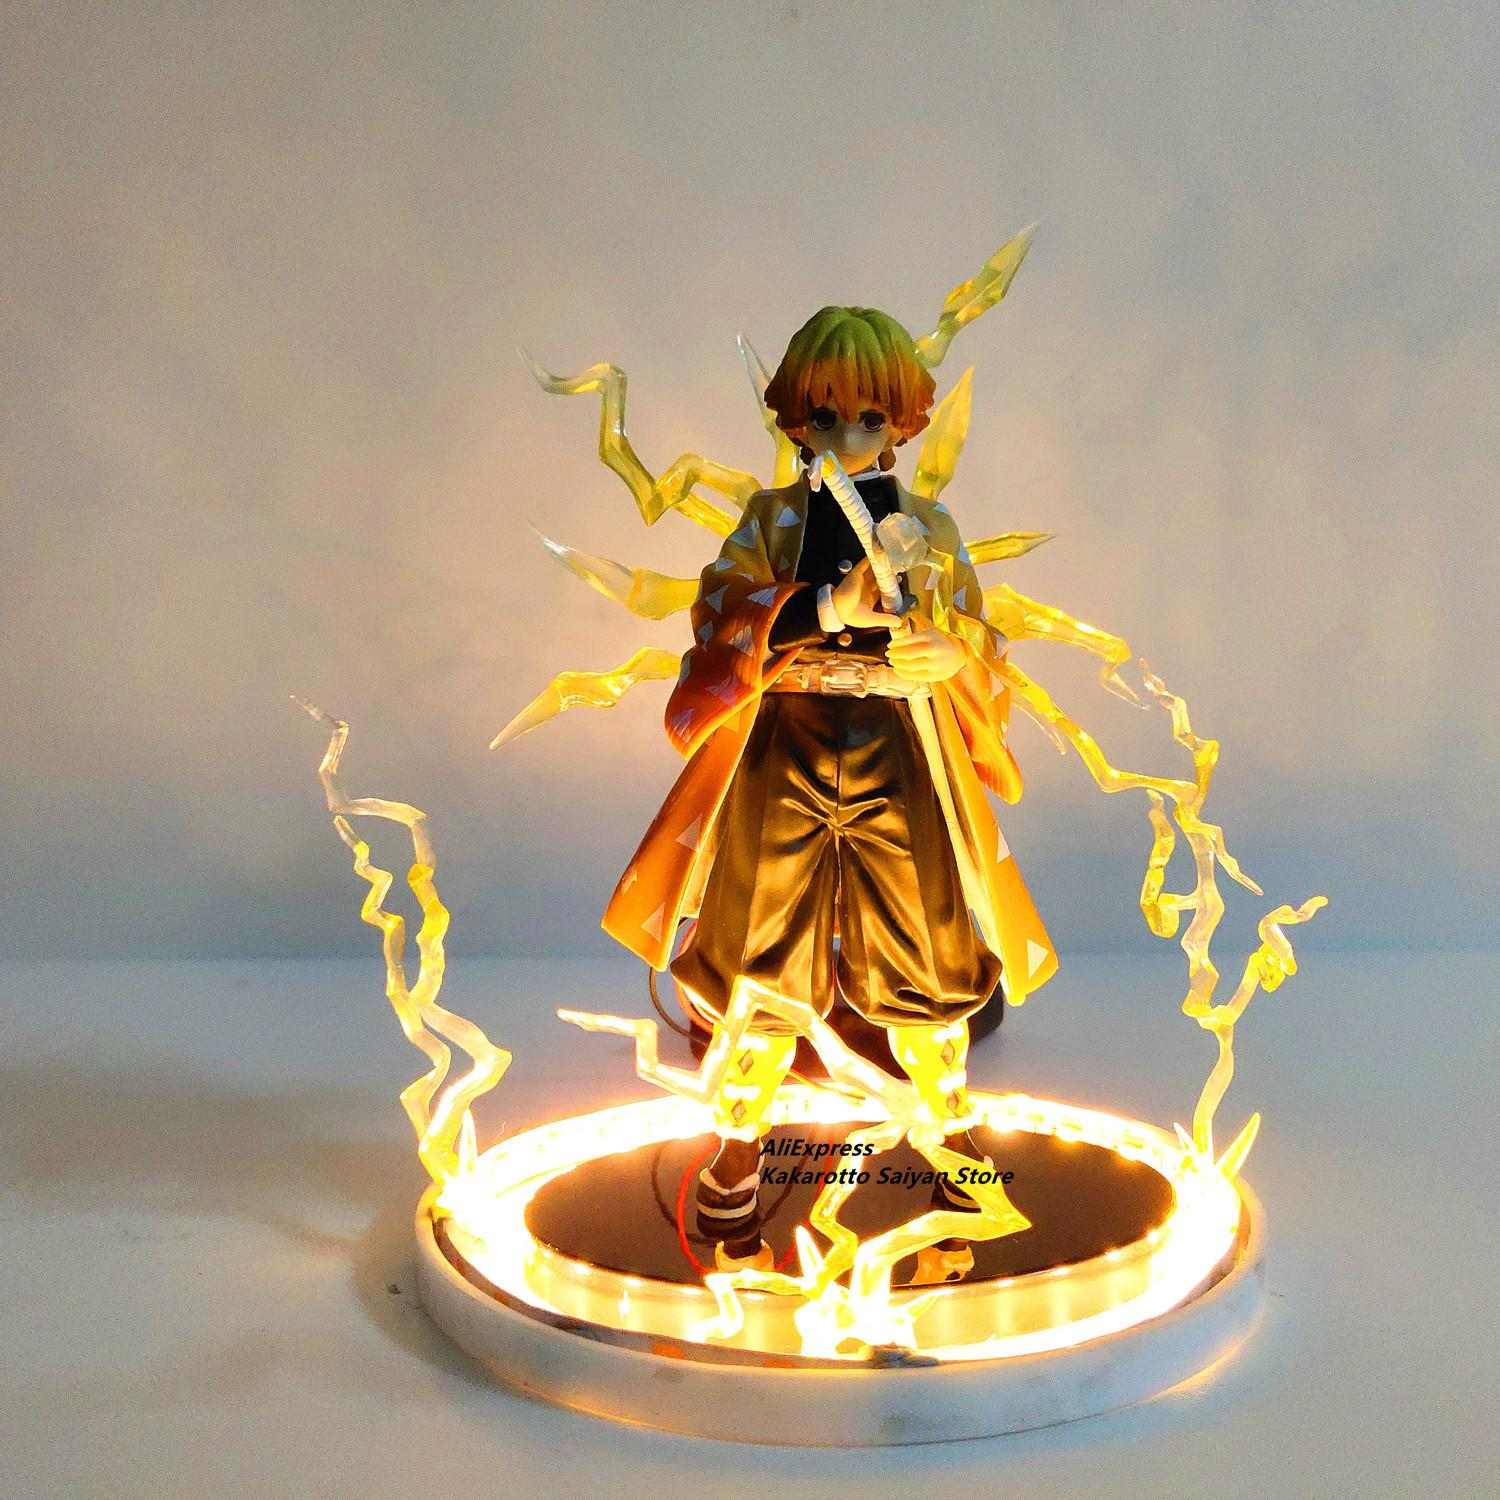 Demon Slayer Agatsuma Zenitsu PVC Action Figures Thunderclap and Flash Effect Anime Kimetsu no Yaiba Figurine Model Toys T200628